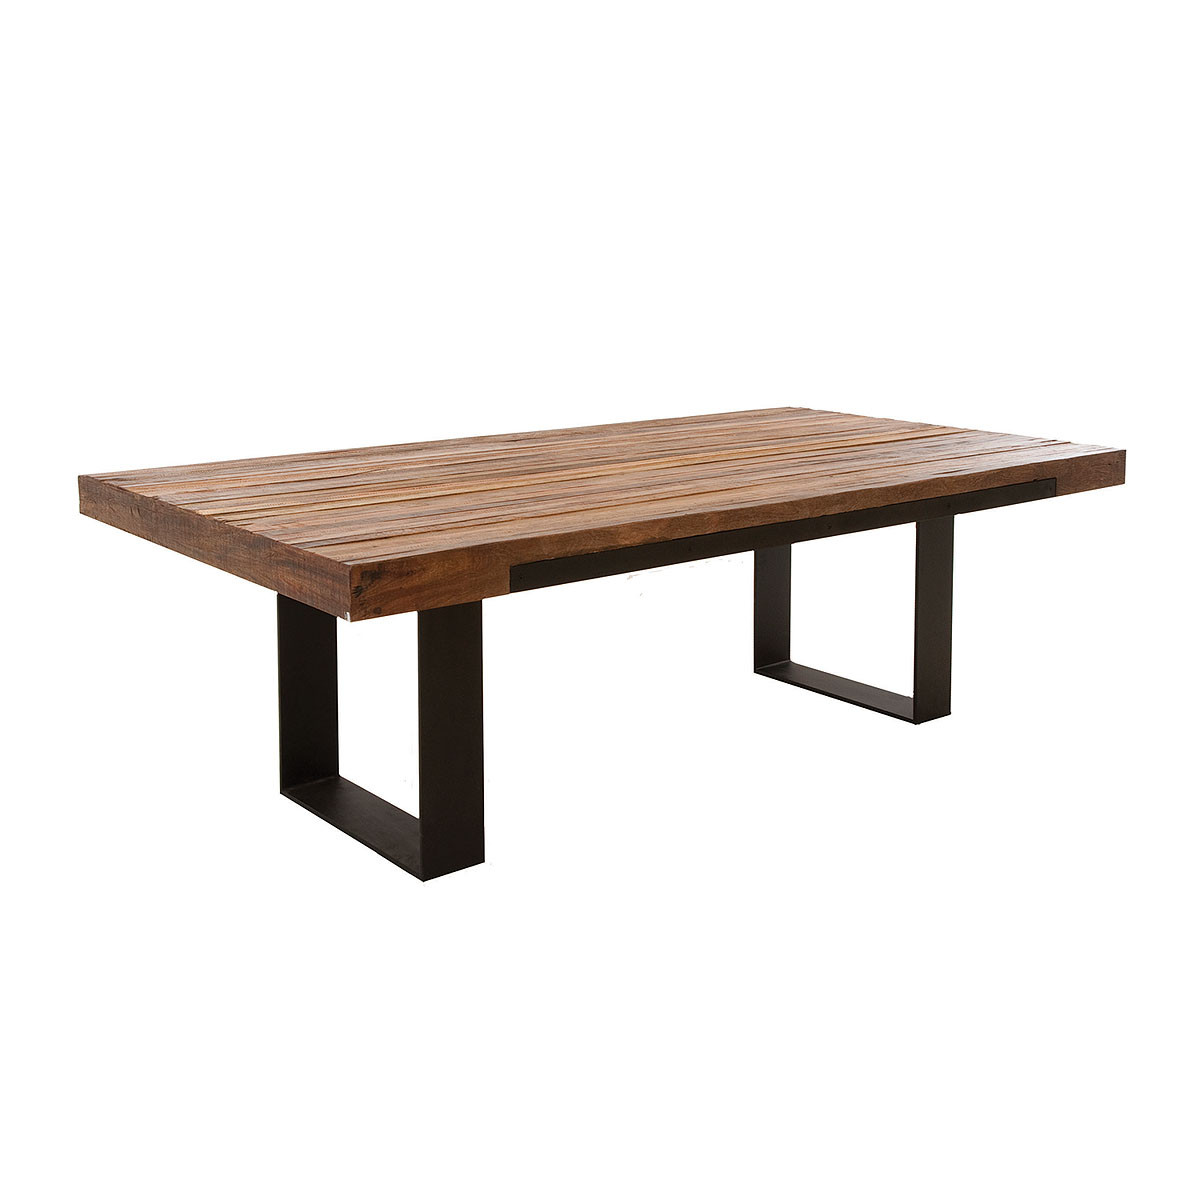 Superb img of Dining Table: Make Dining Table Recycled Wood with #65412B color and 1200x1200 pixels